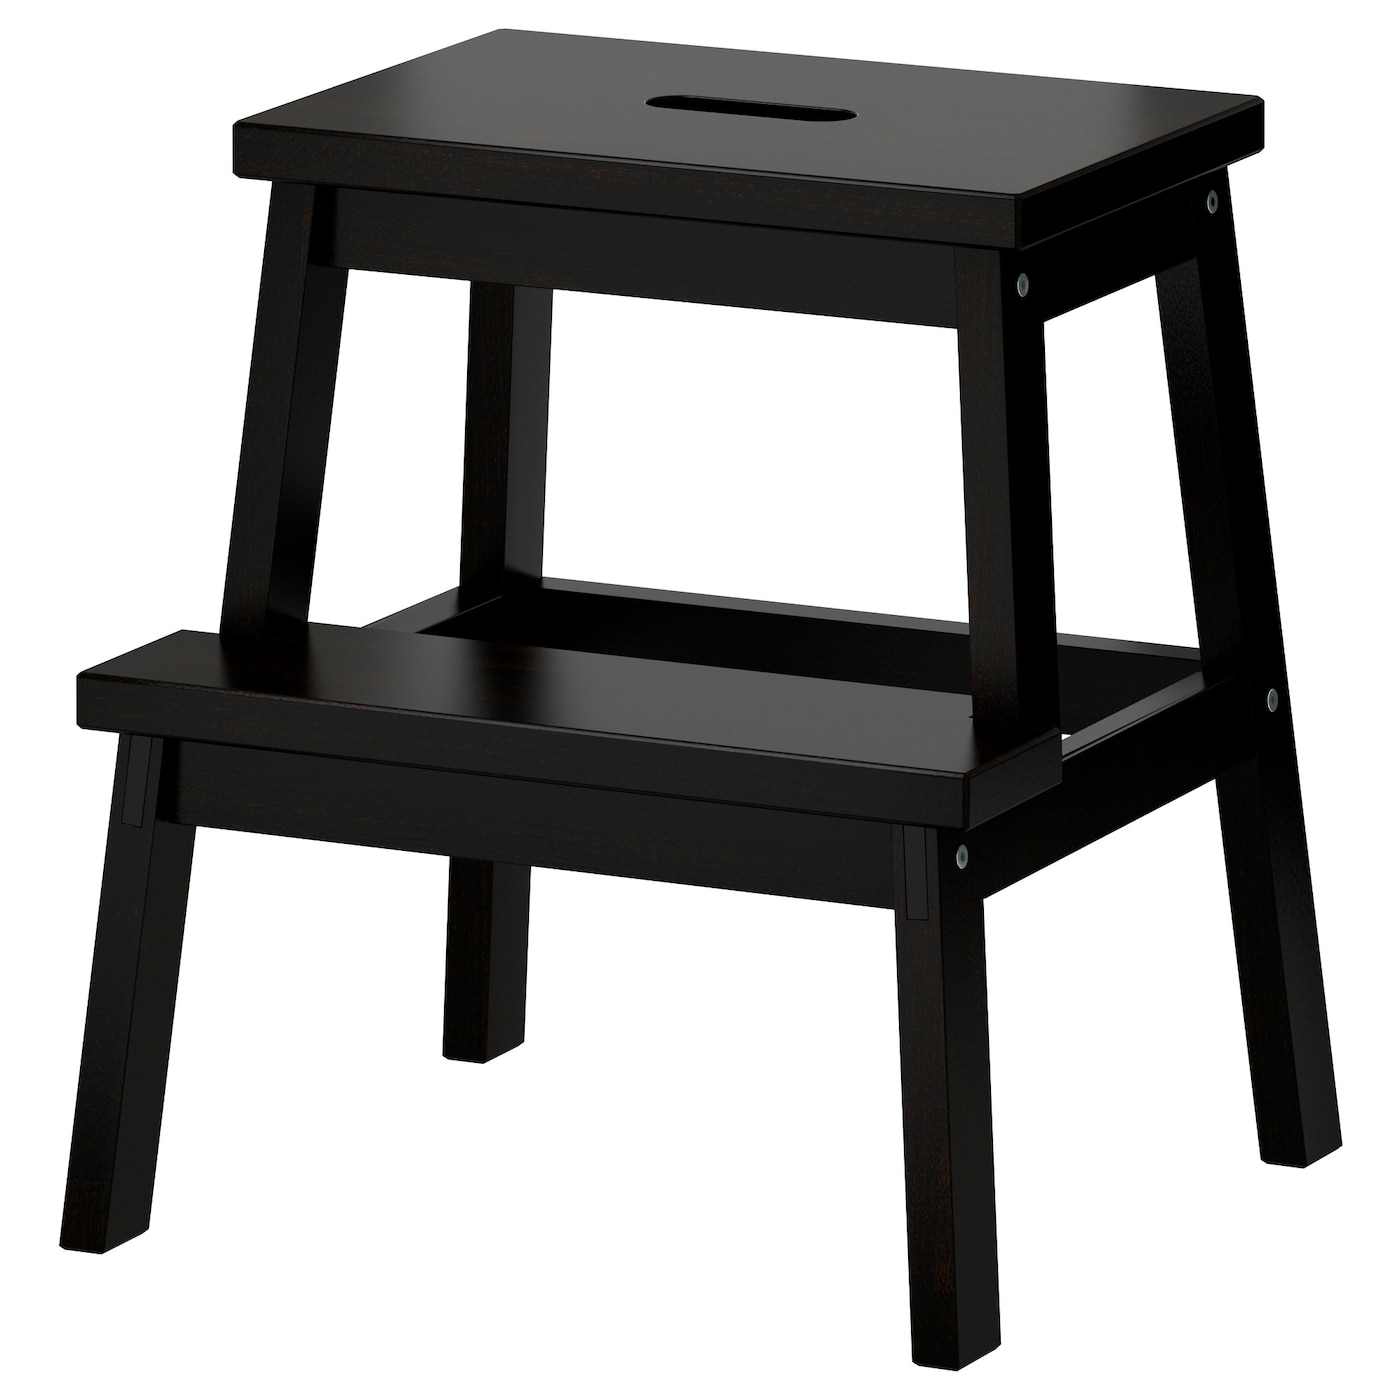 IKEA BEKVÄM step stool Solid wood is a hardwearing natural material.